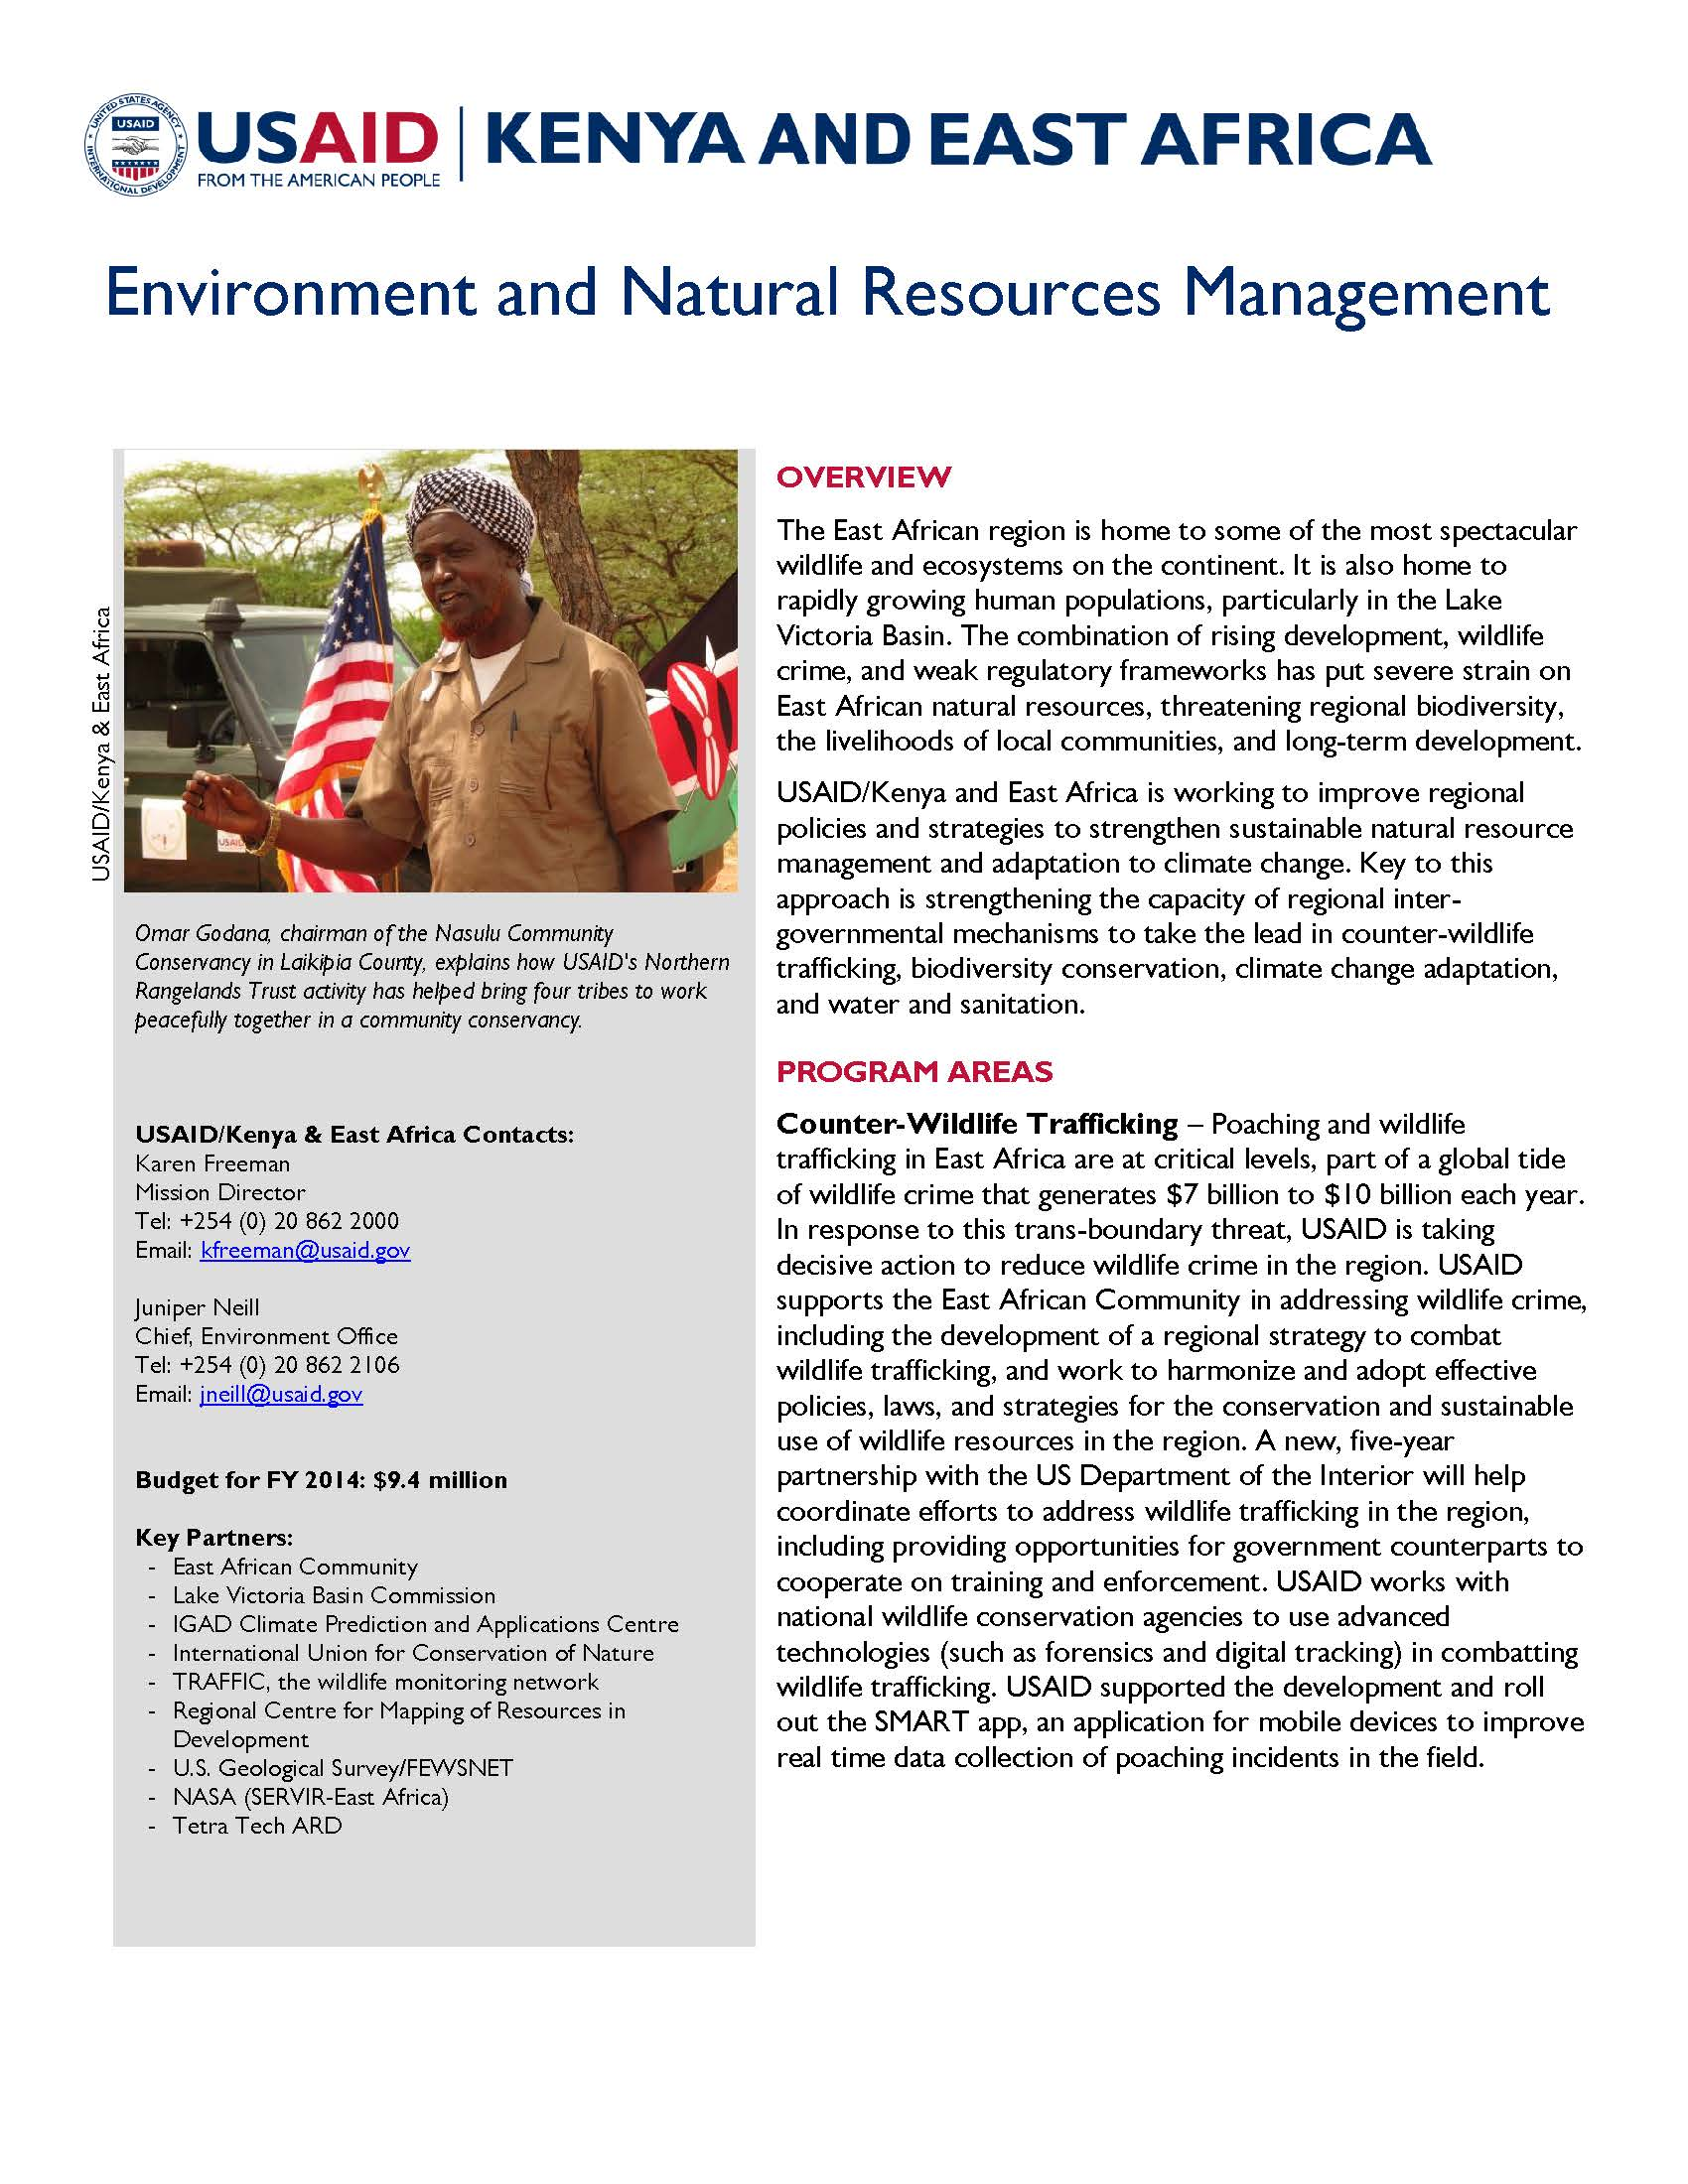 Environment and Natural Resources Management Fact Sheet